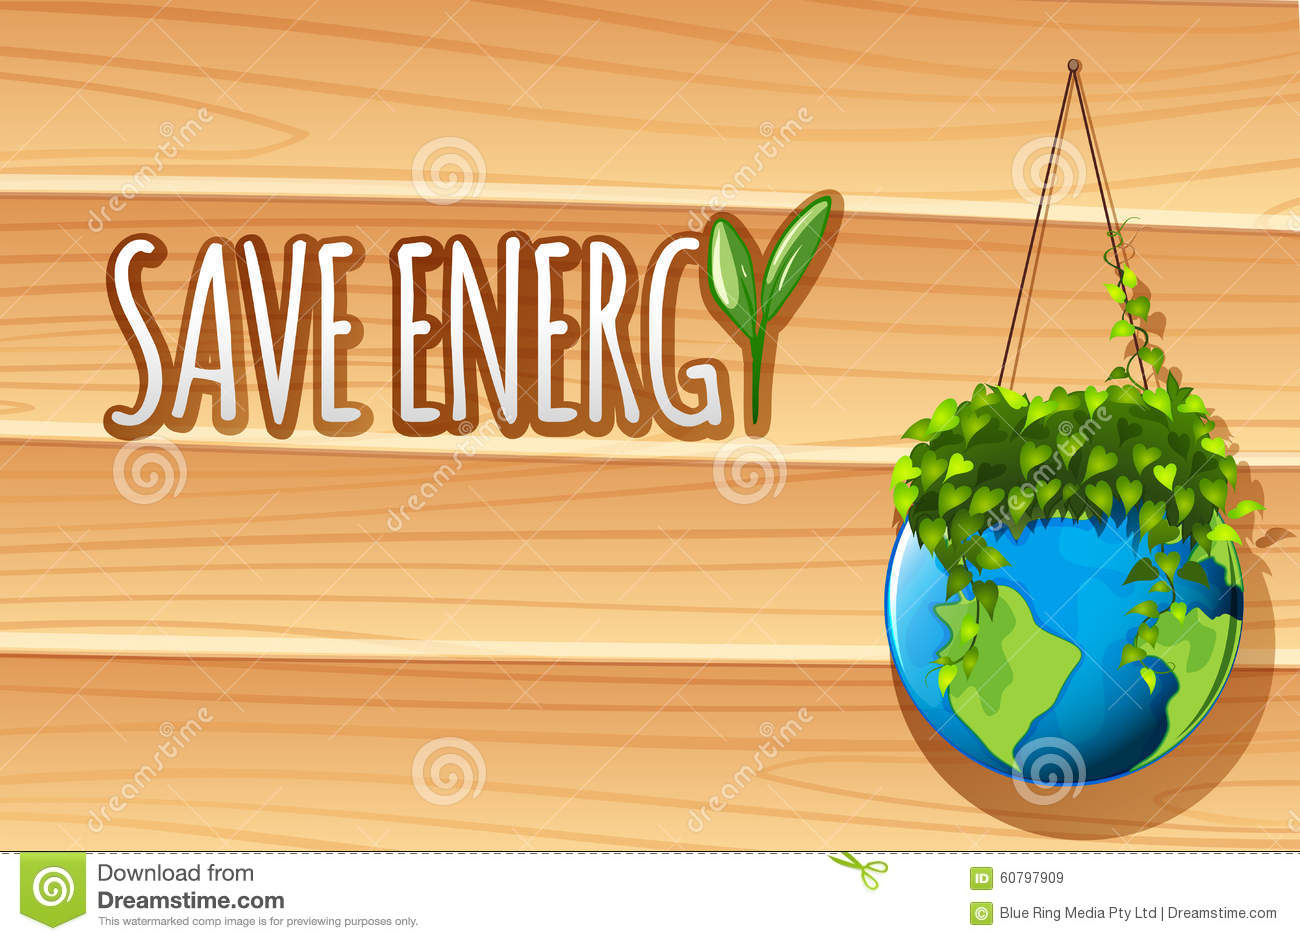 Save Energy Poster With Globe And Plants Stock Vector Illustration